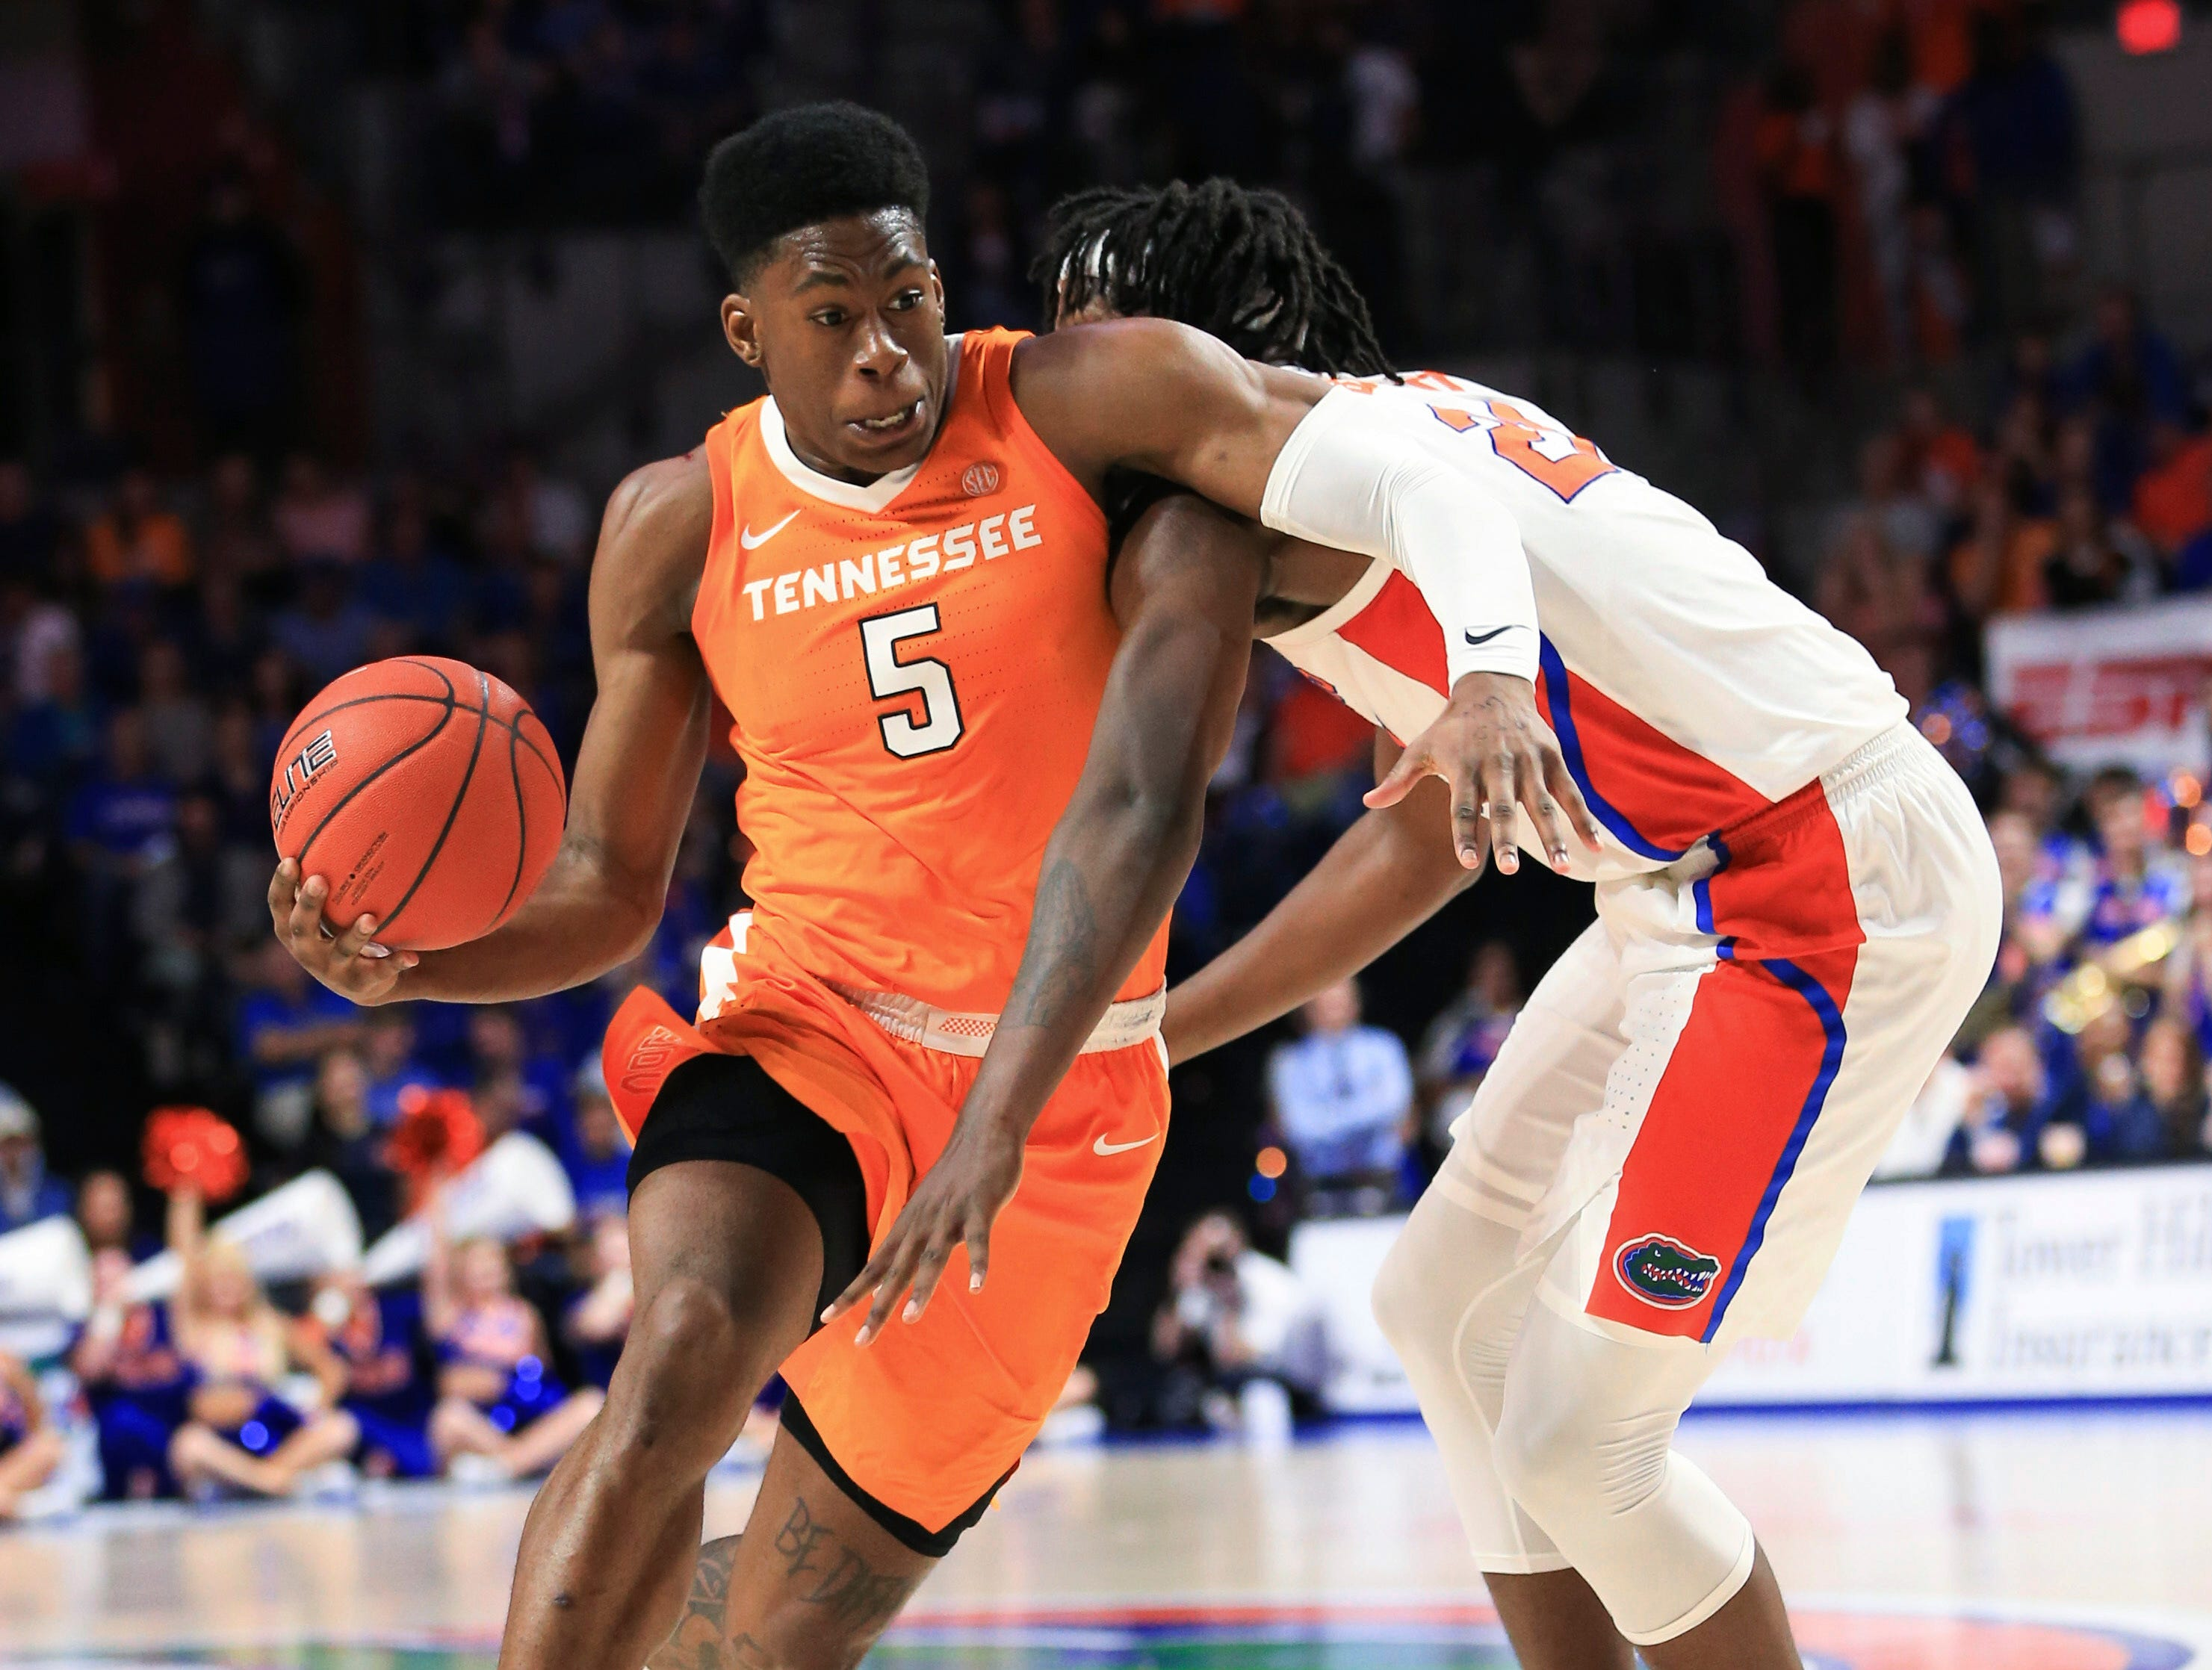 Tennessee guard Admiral Schofield (5) drives past Florida forward Dontay Bassett (21) on Jan. 12, 2019.